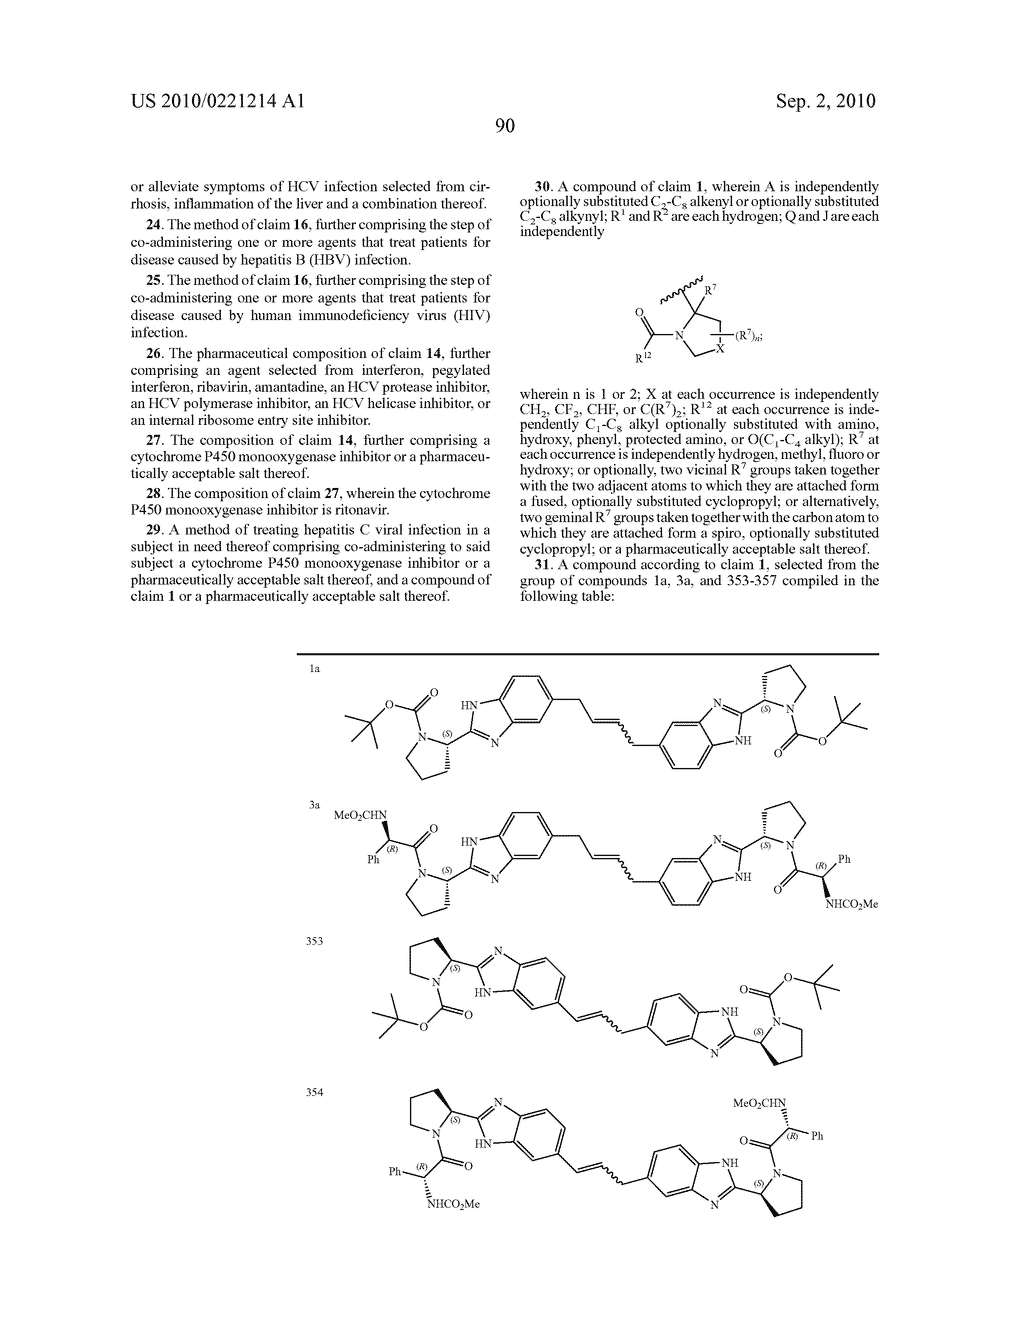 LINKED DIBENZIMIDAZOLE DERIVATIVES - diagram, schematic, and image 91